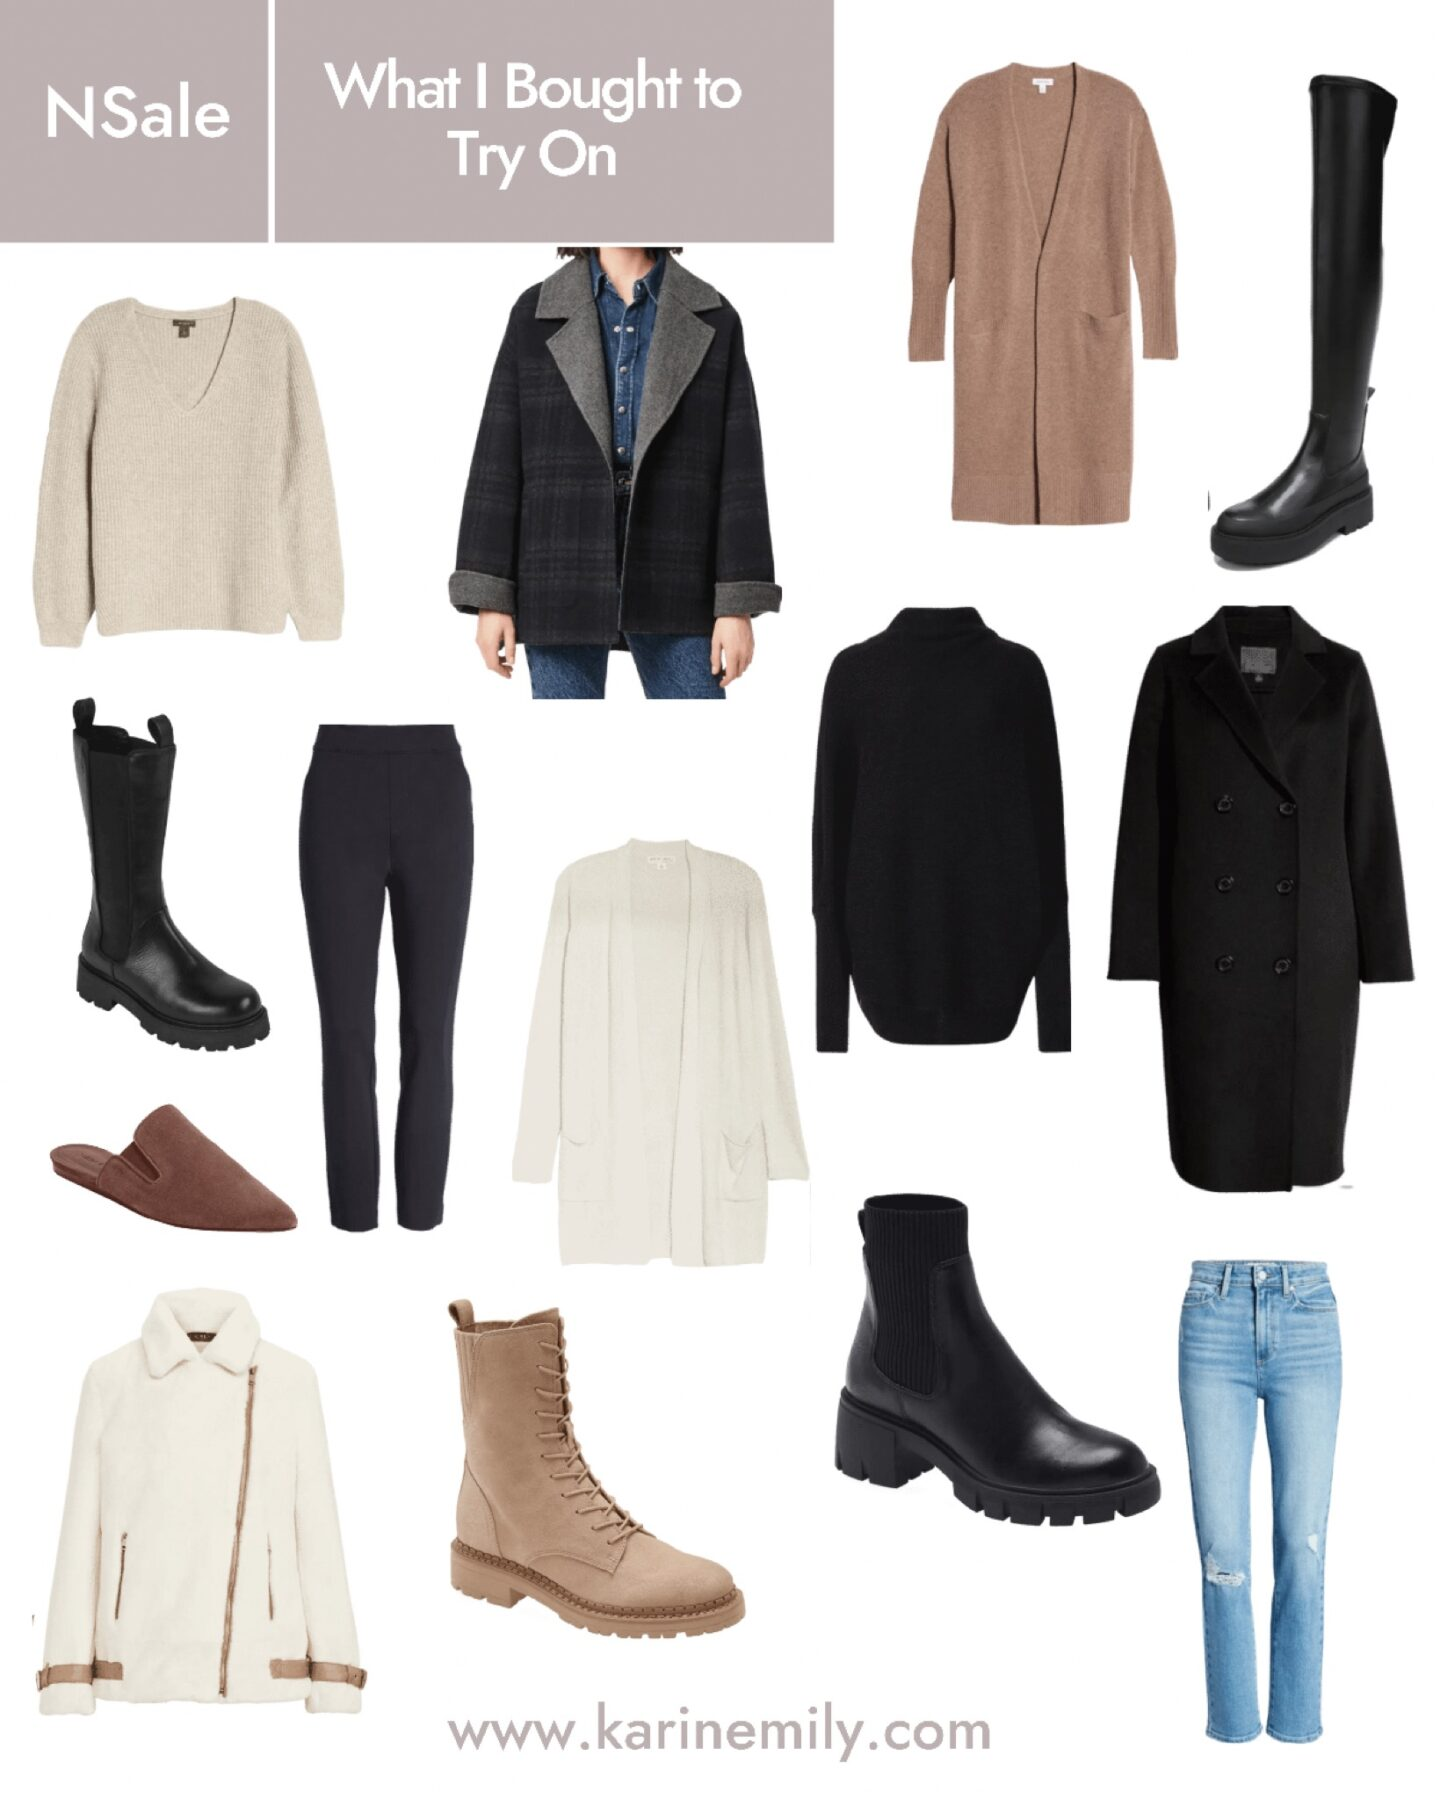 Nordstrom Anniversary Sale - What I Bought to Try On